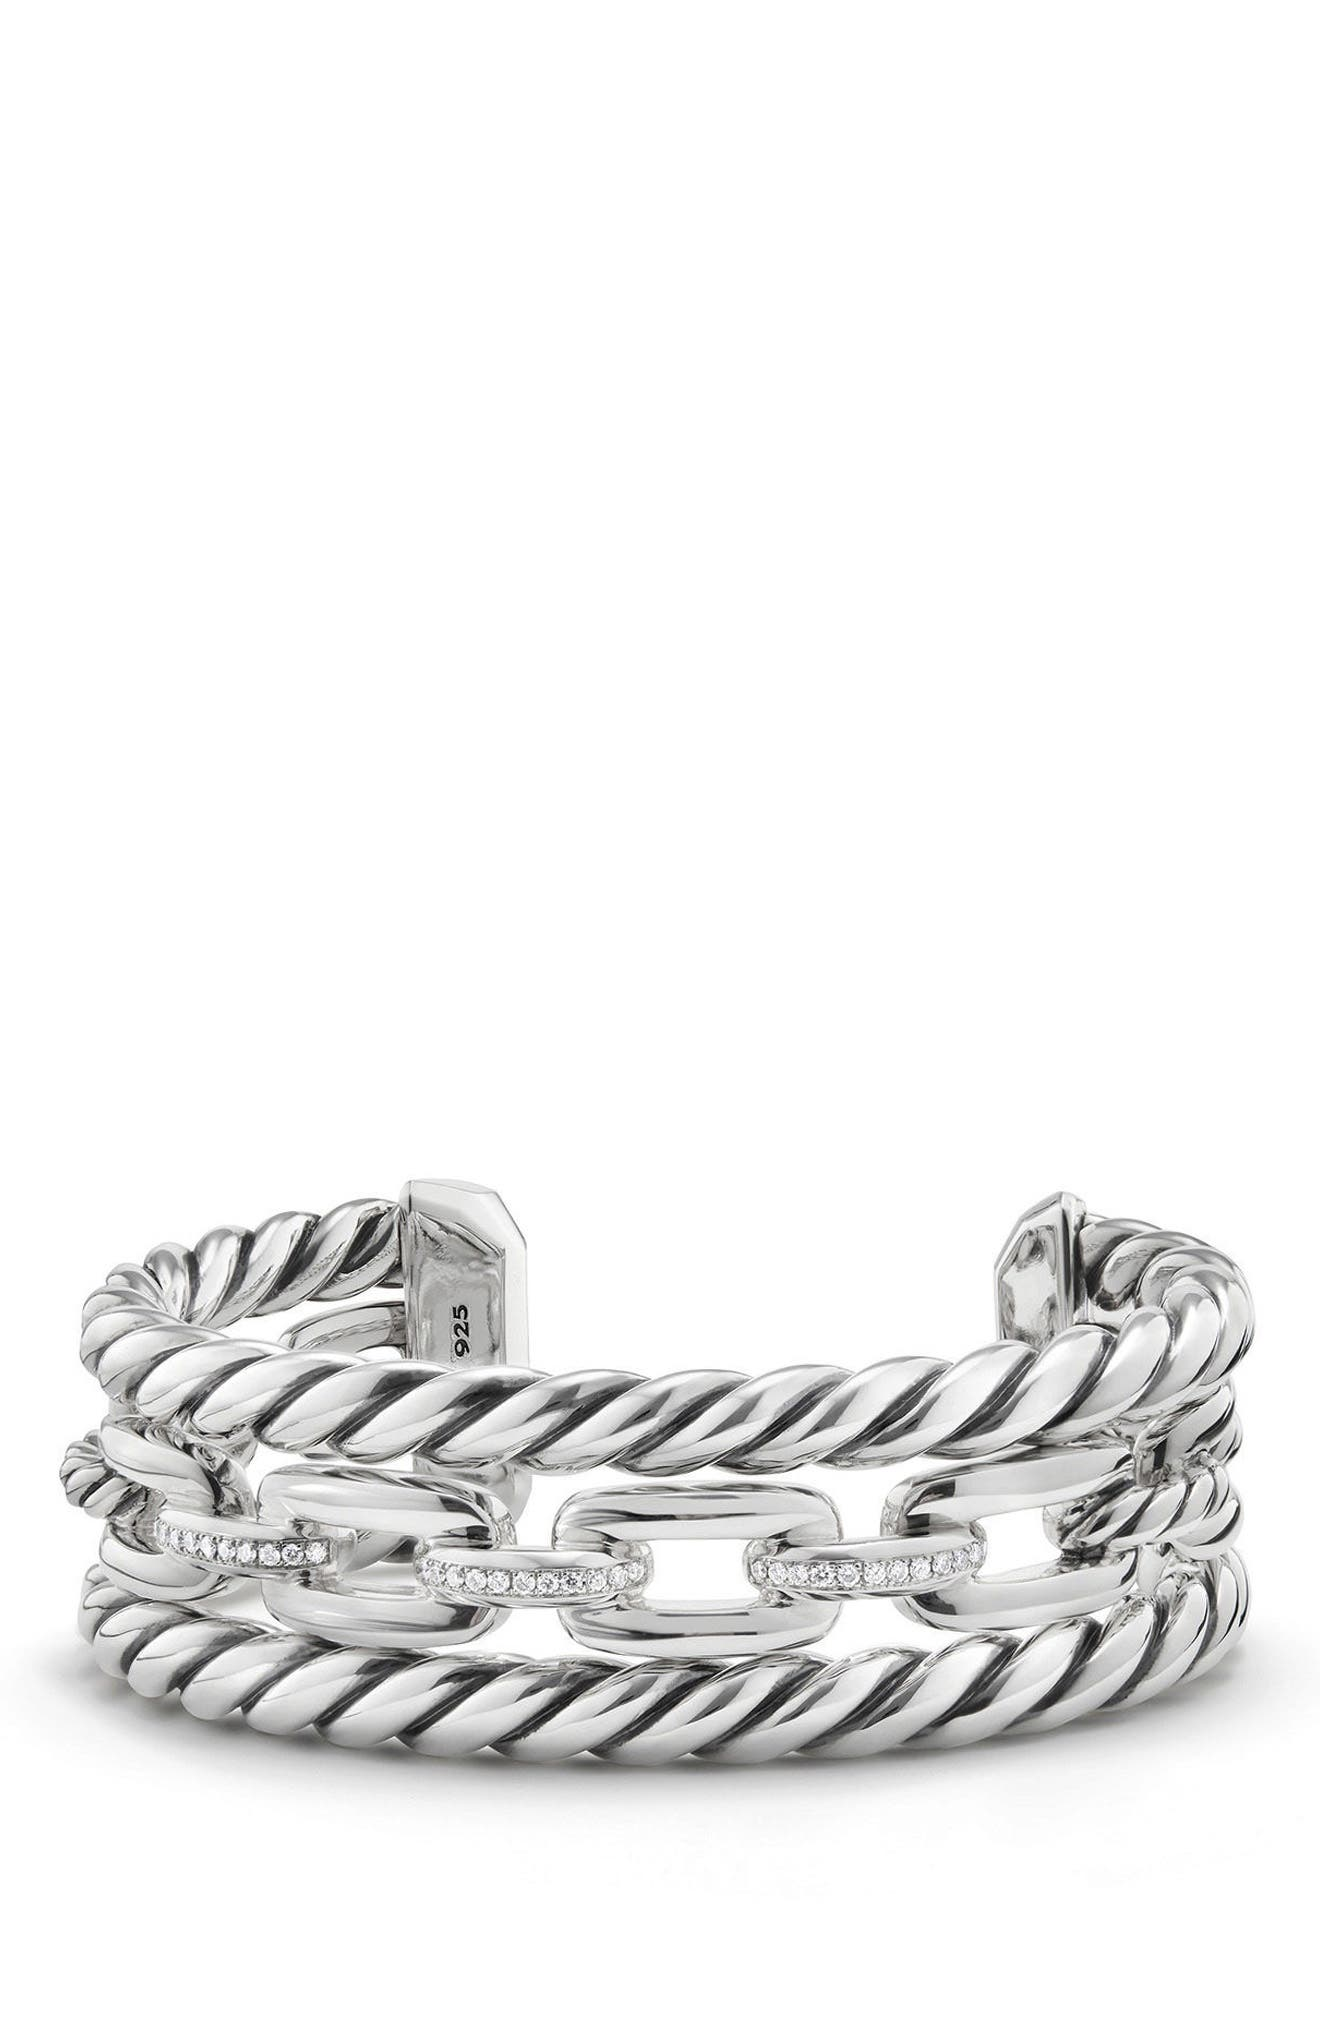 Wellesley Link Chain Three-Row Cuff with Diamonds,                             Main thumbnail 1, color,                             Silver